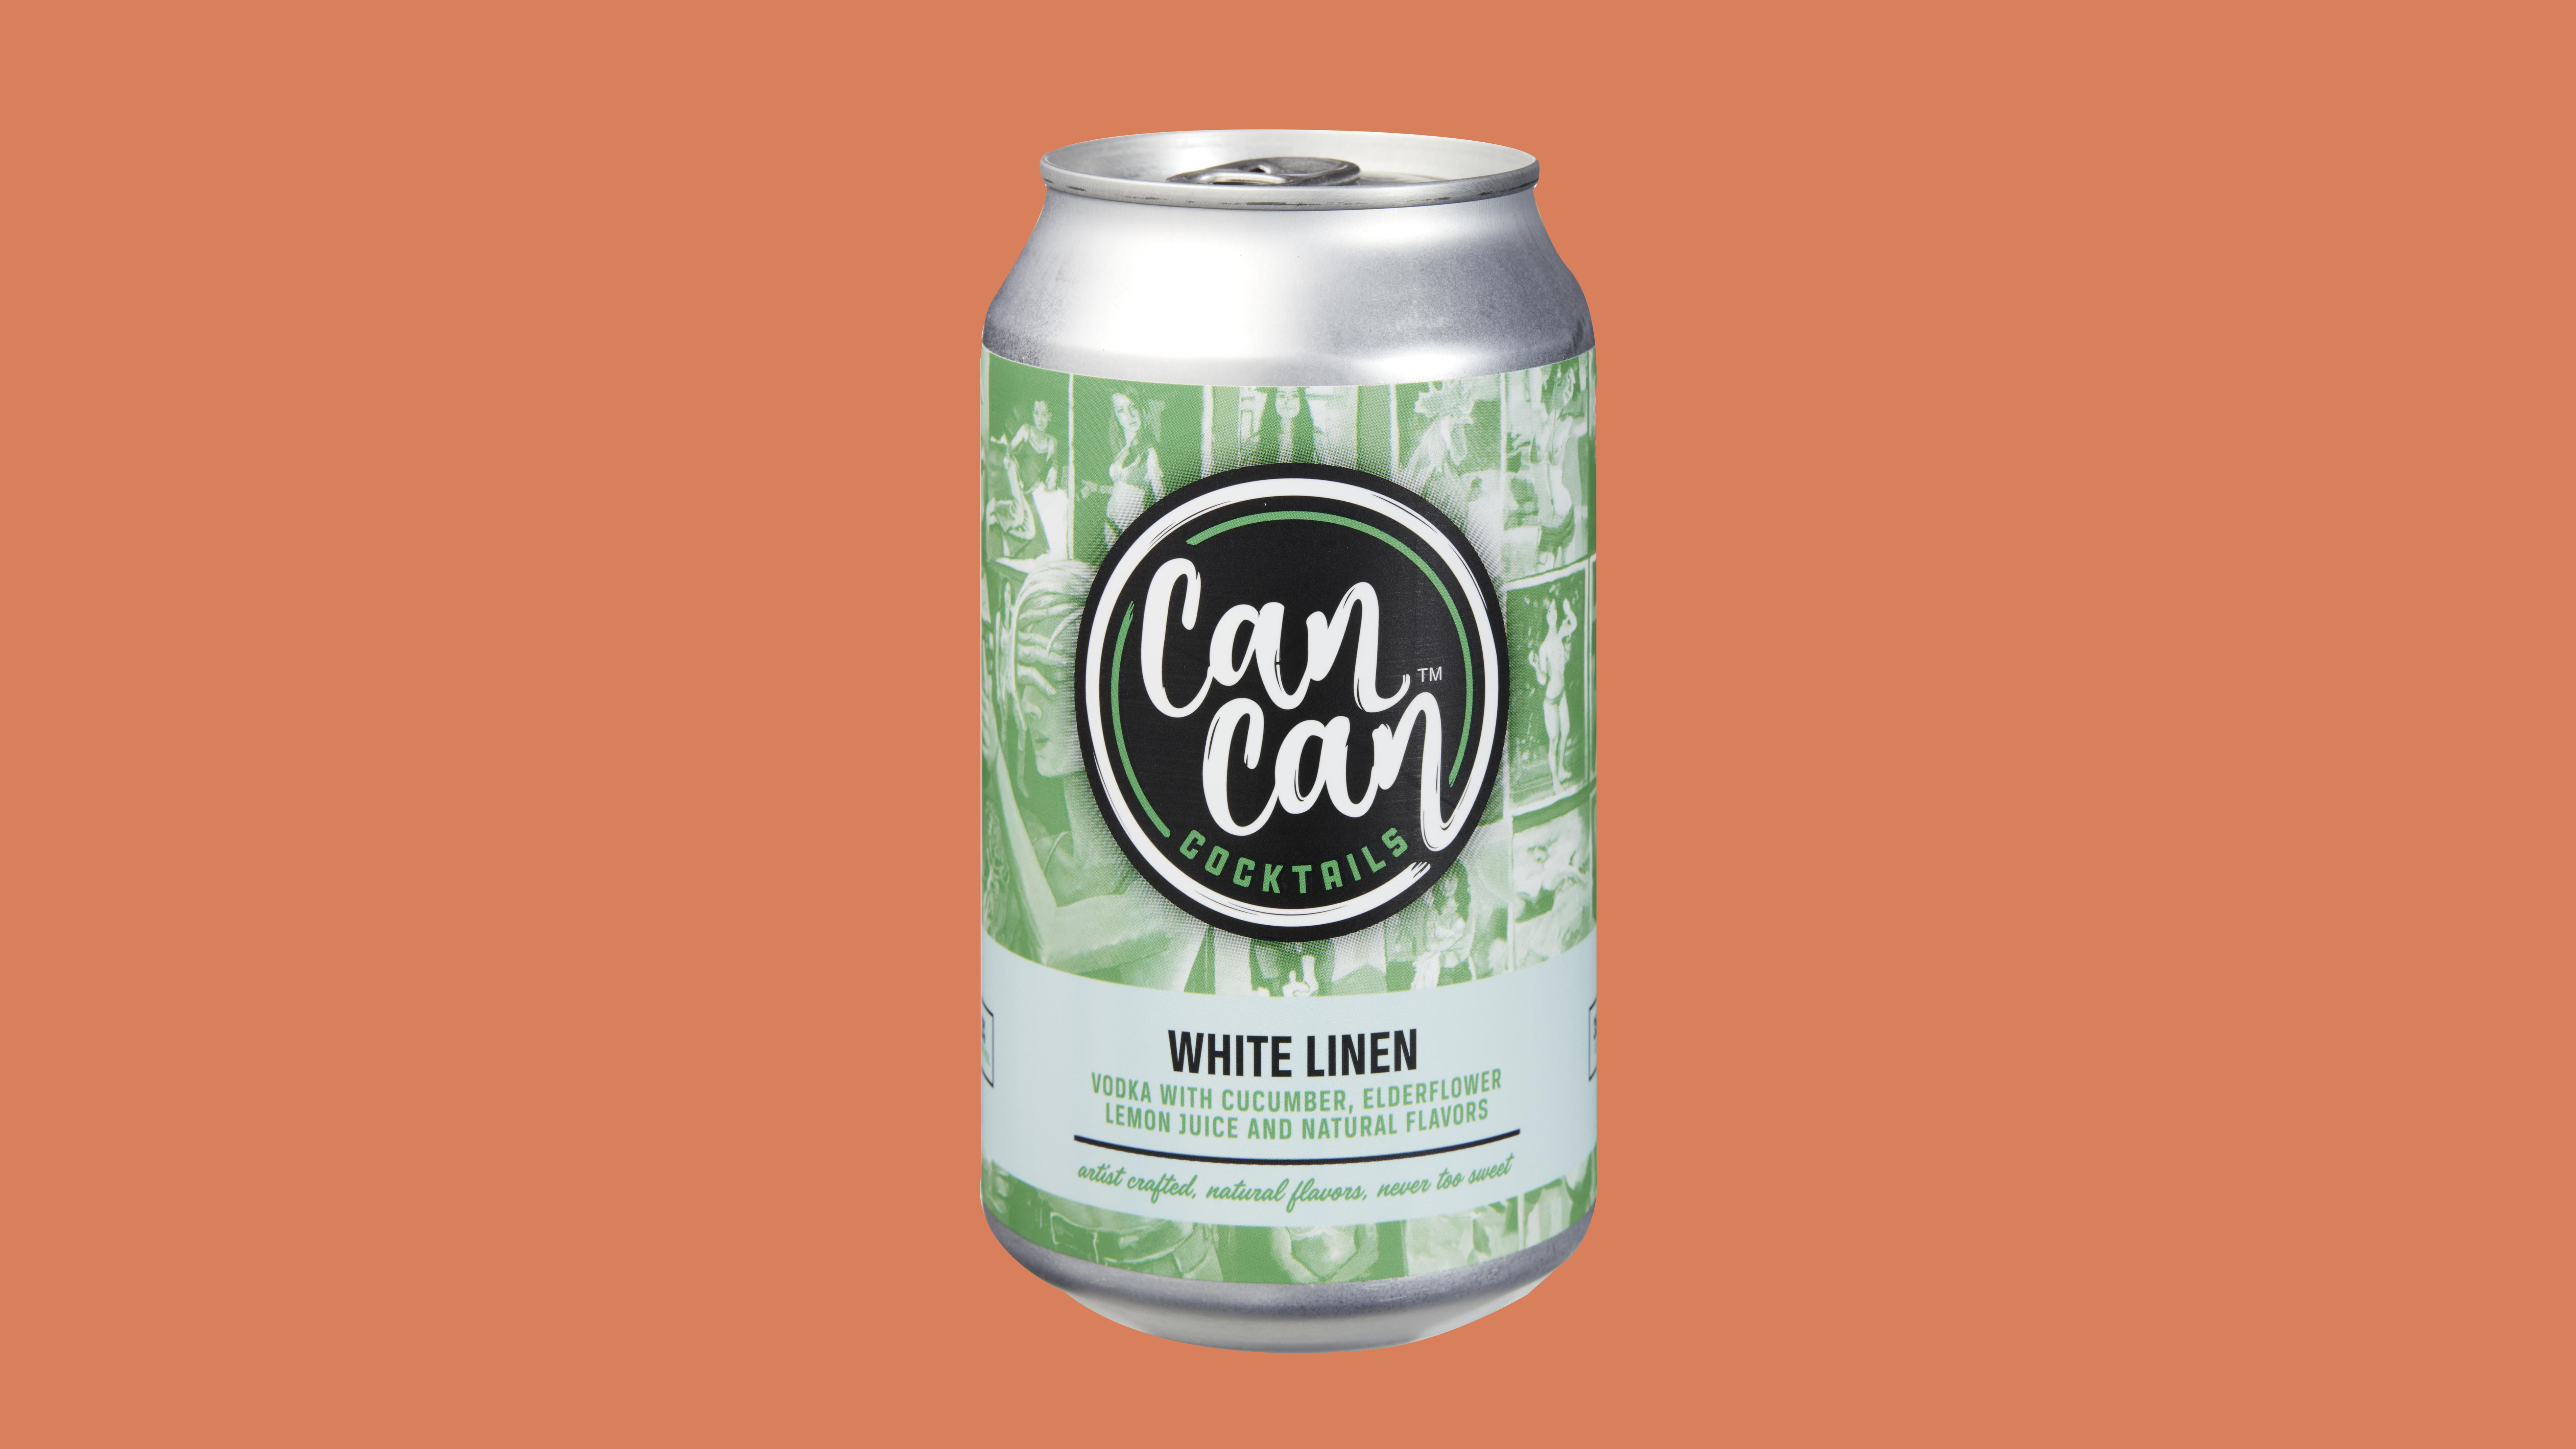 white linen canned cocktail